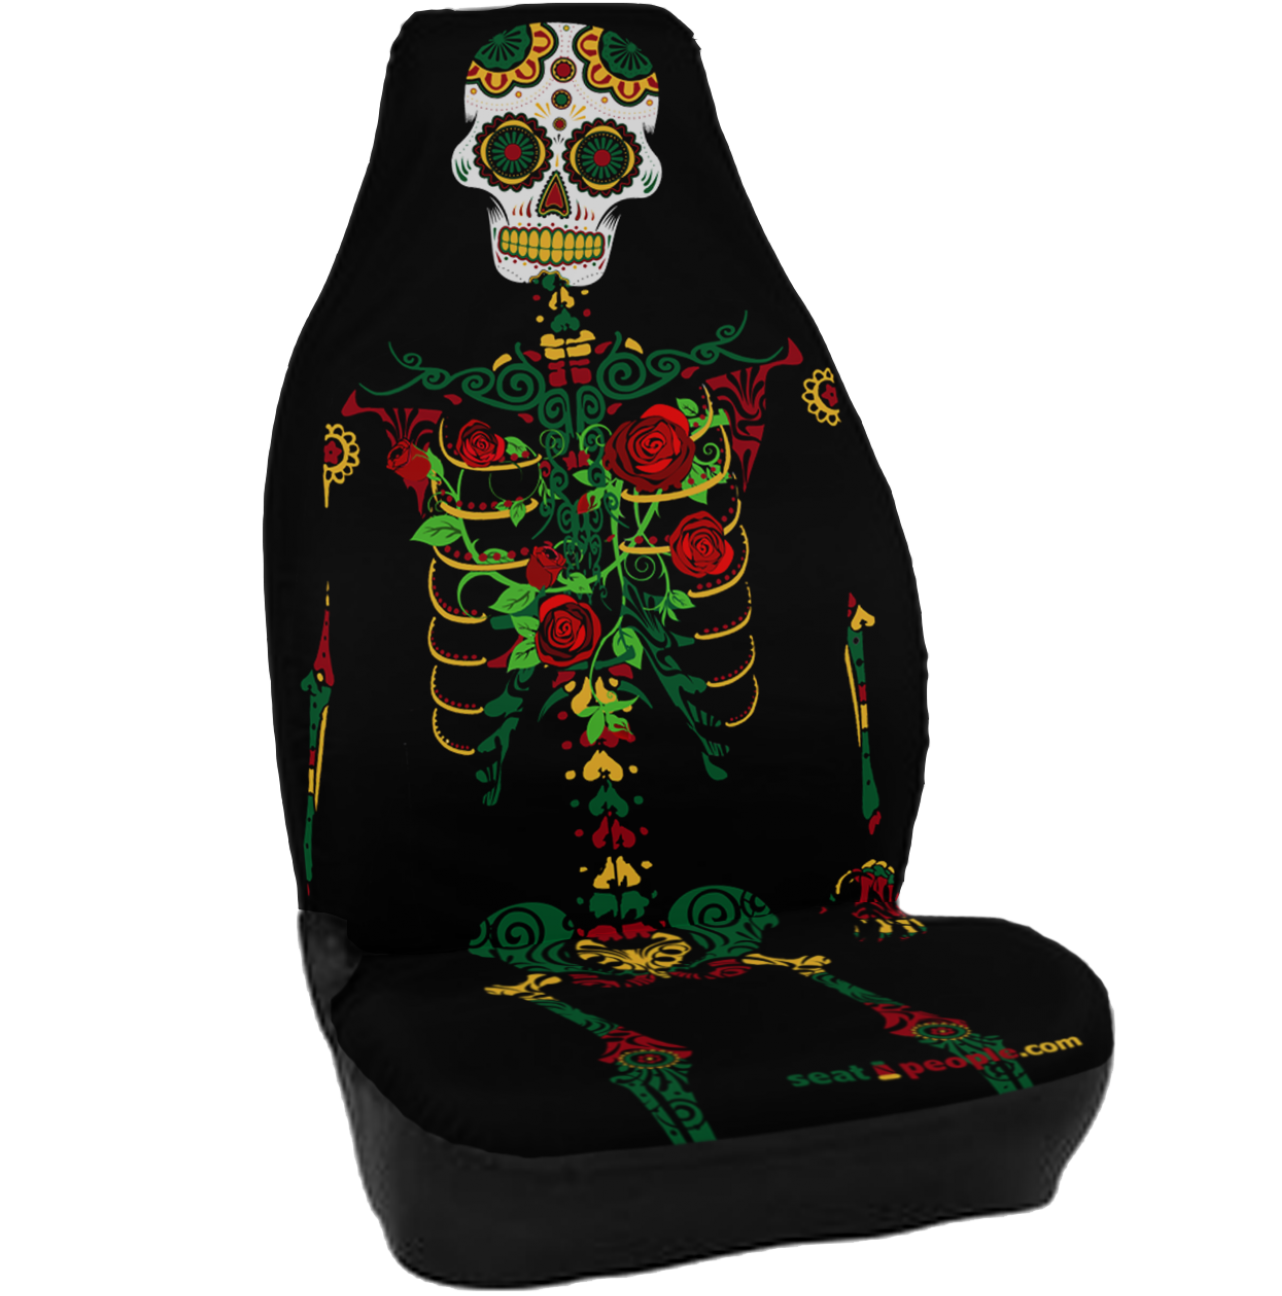 Day of the dead seat cover : skulls : Pinterest : Best ...